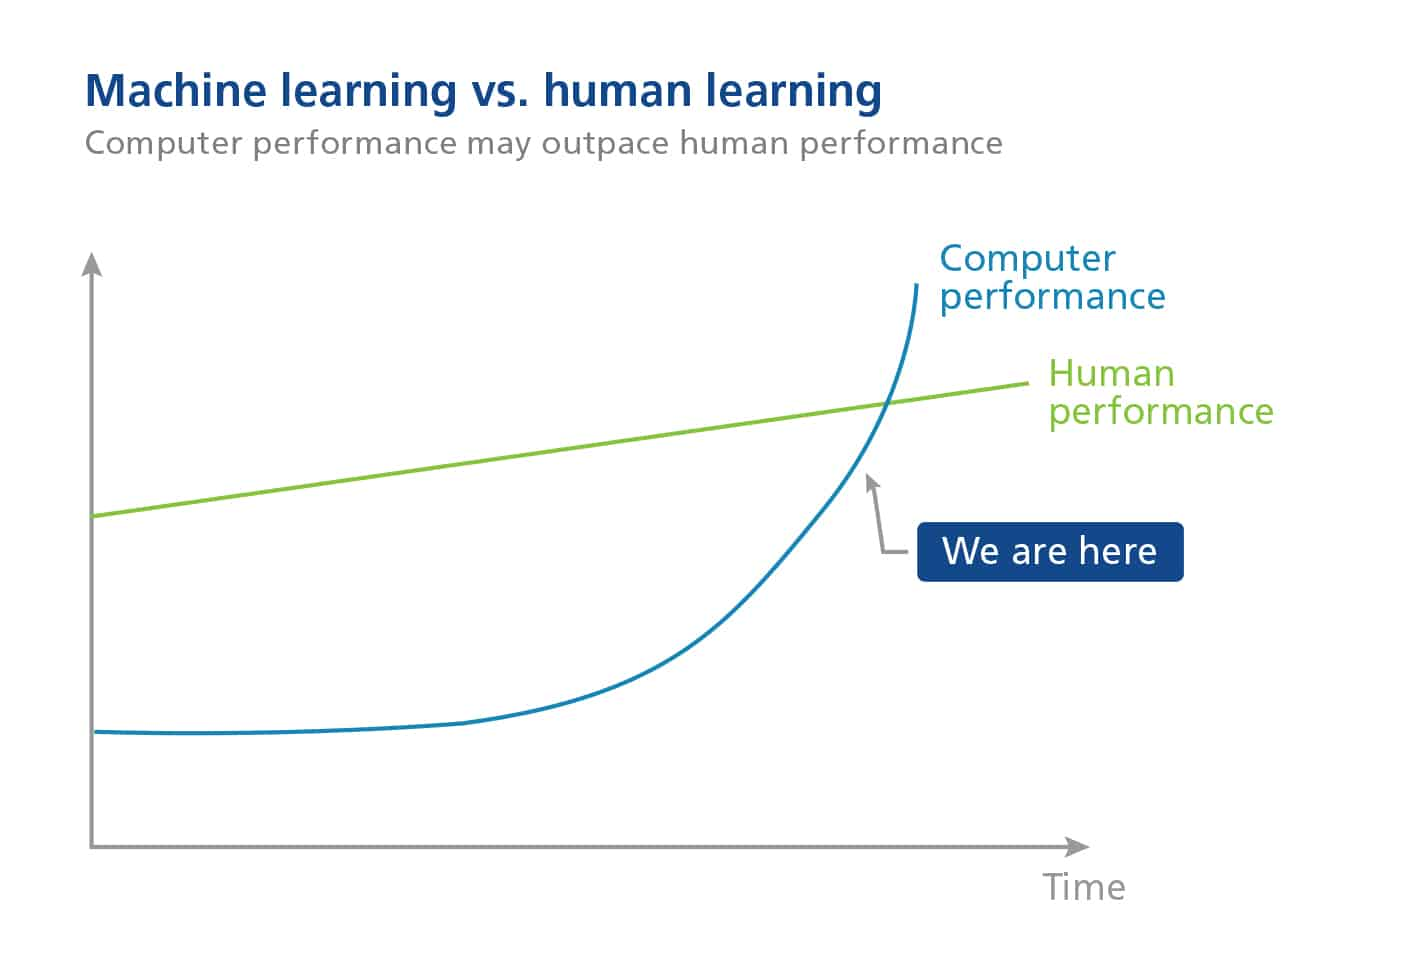 Chart showing that computer performance may outpace human performance in the future